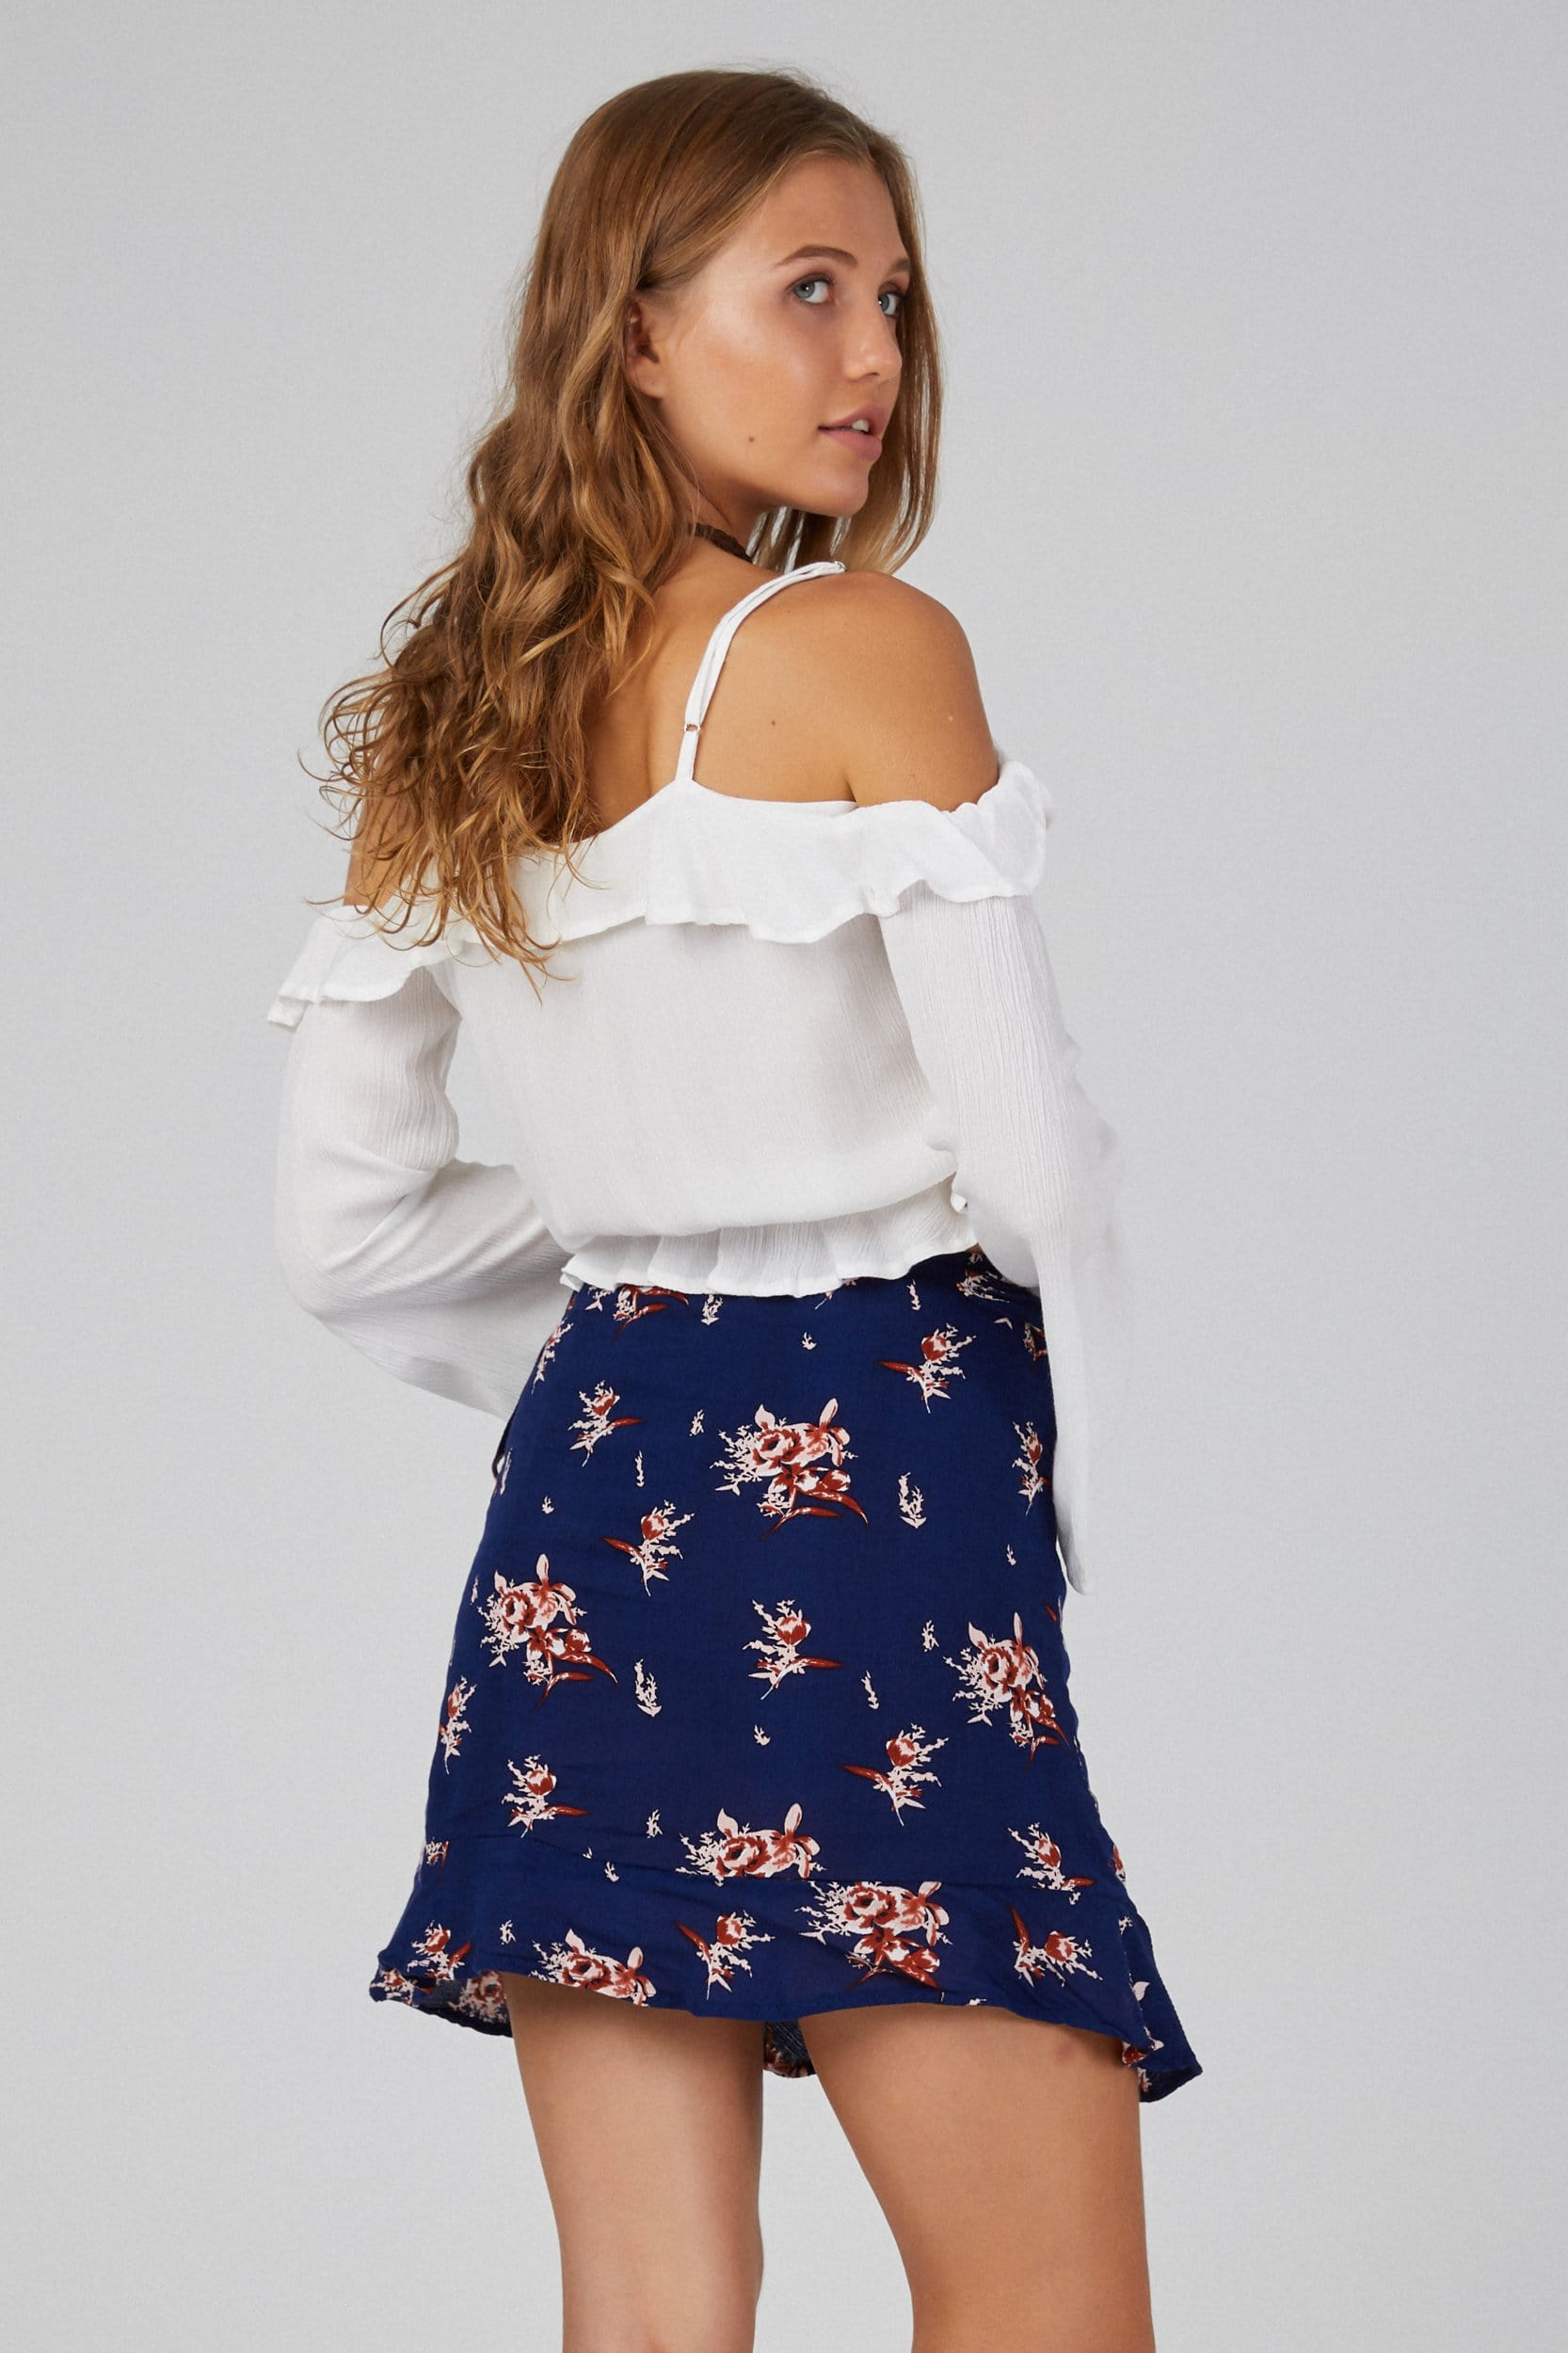 Frill Wrap Skirt - Skirt - LOST IN PARADISE